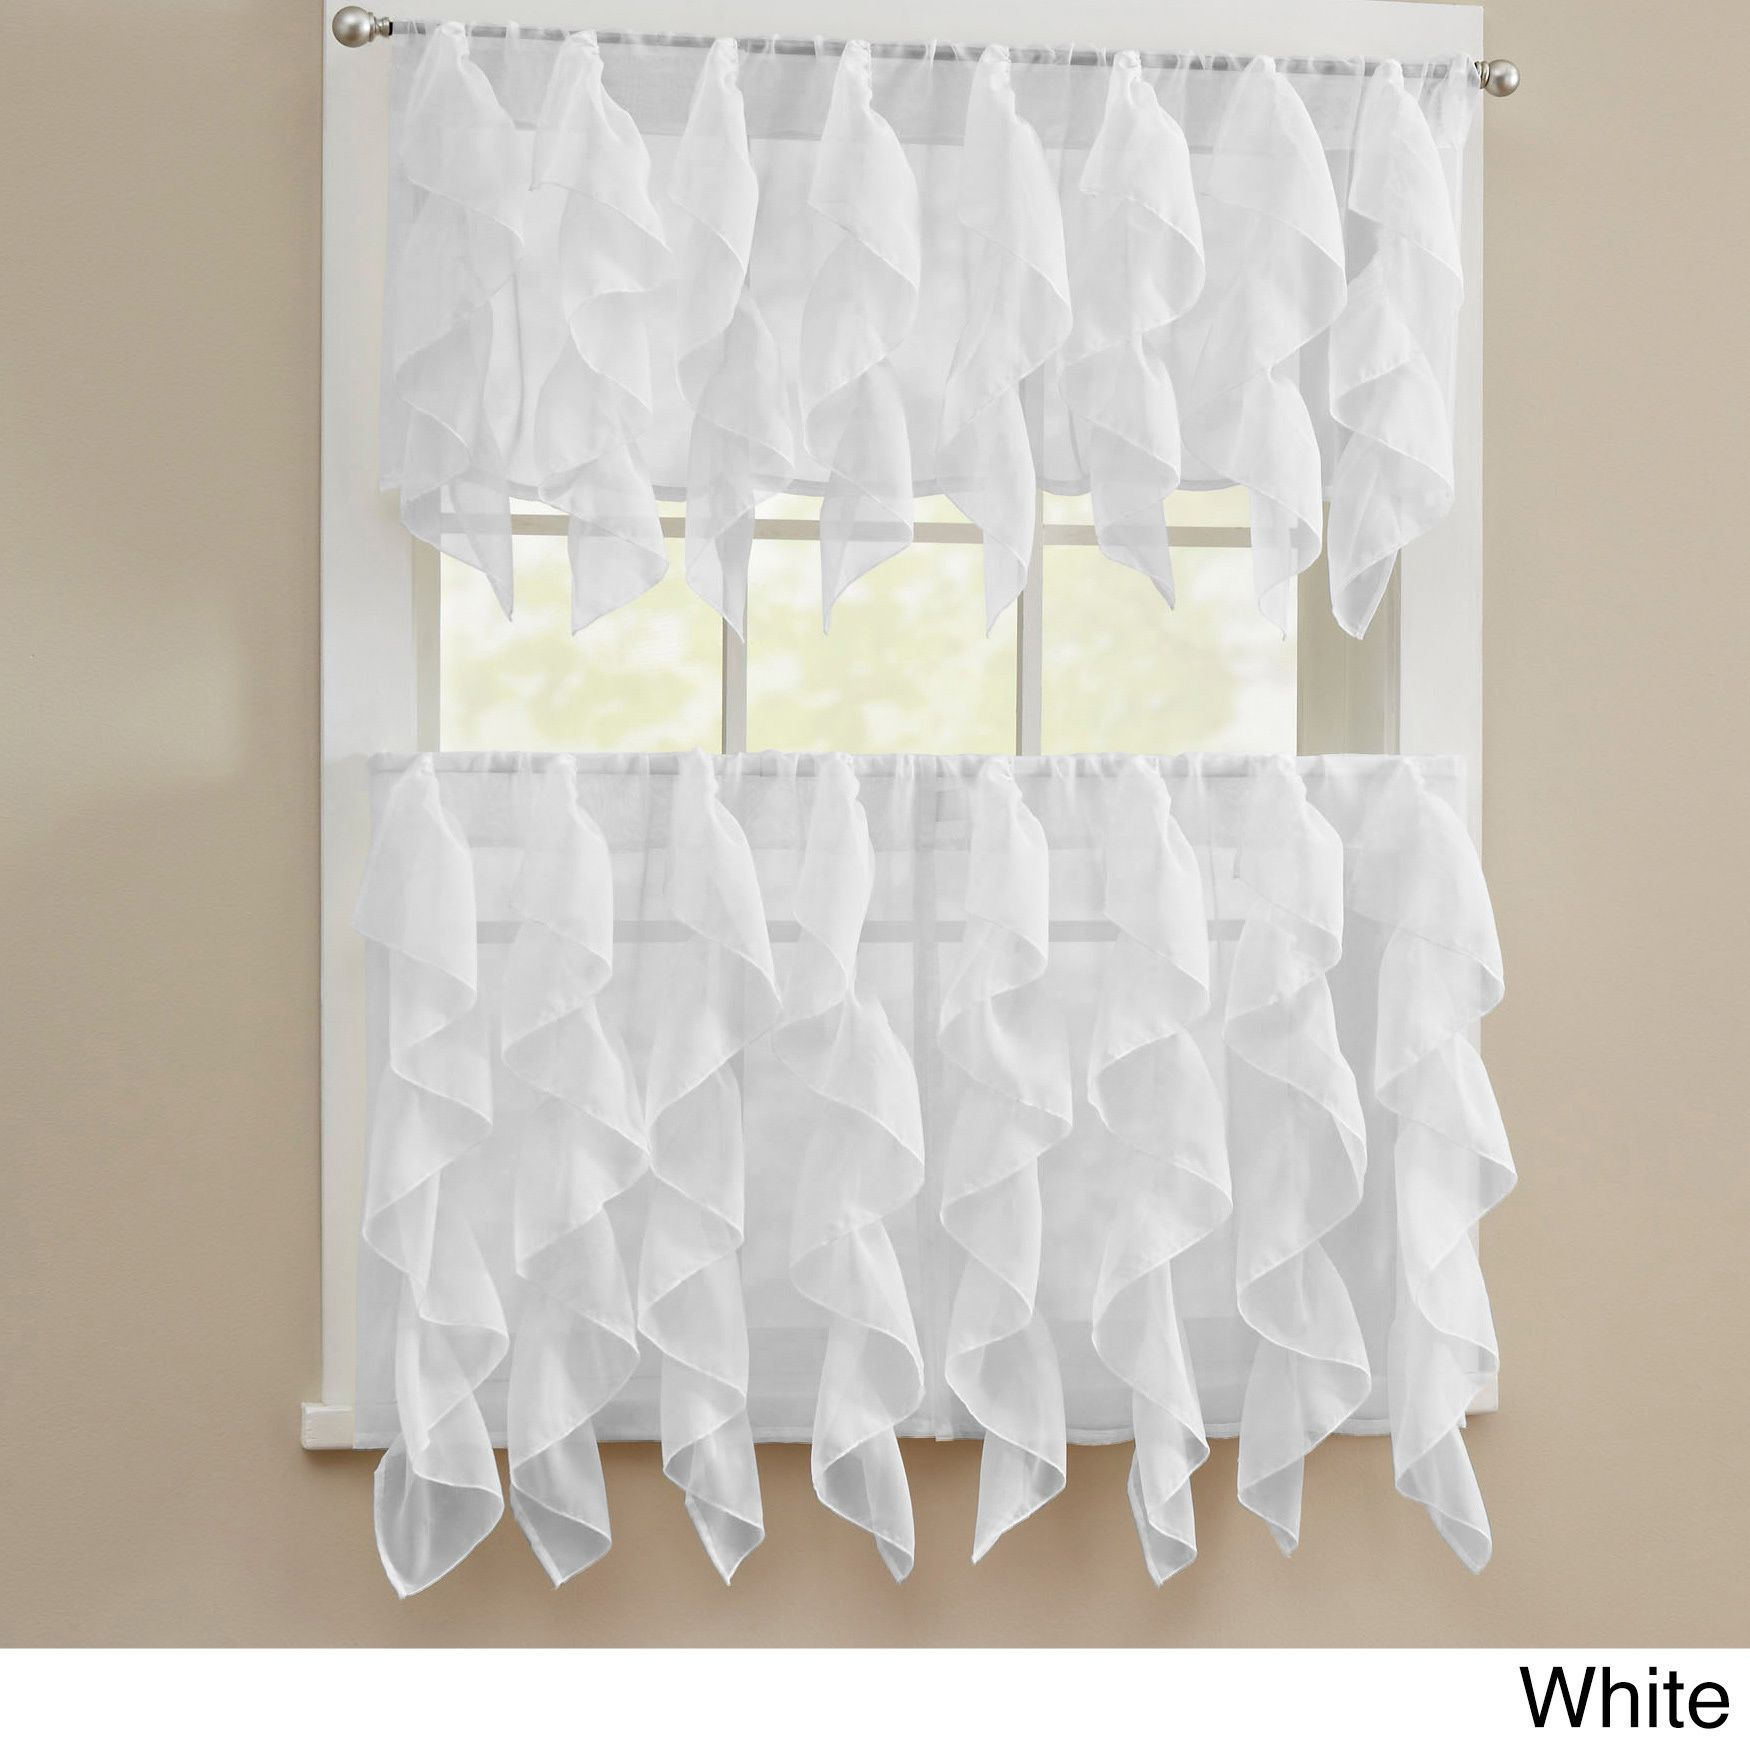 N Chic Sheer Voile Vertical Ruffled Tier Window Curtain Within Sheer Voile Ruffled Tier Window Curtain Panels (View 14 of 20)